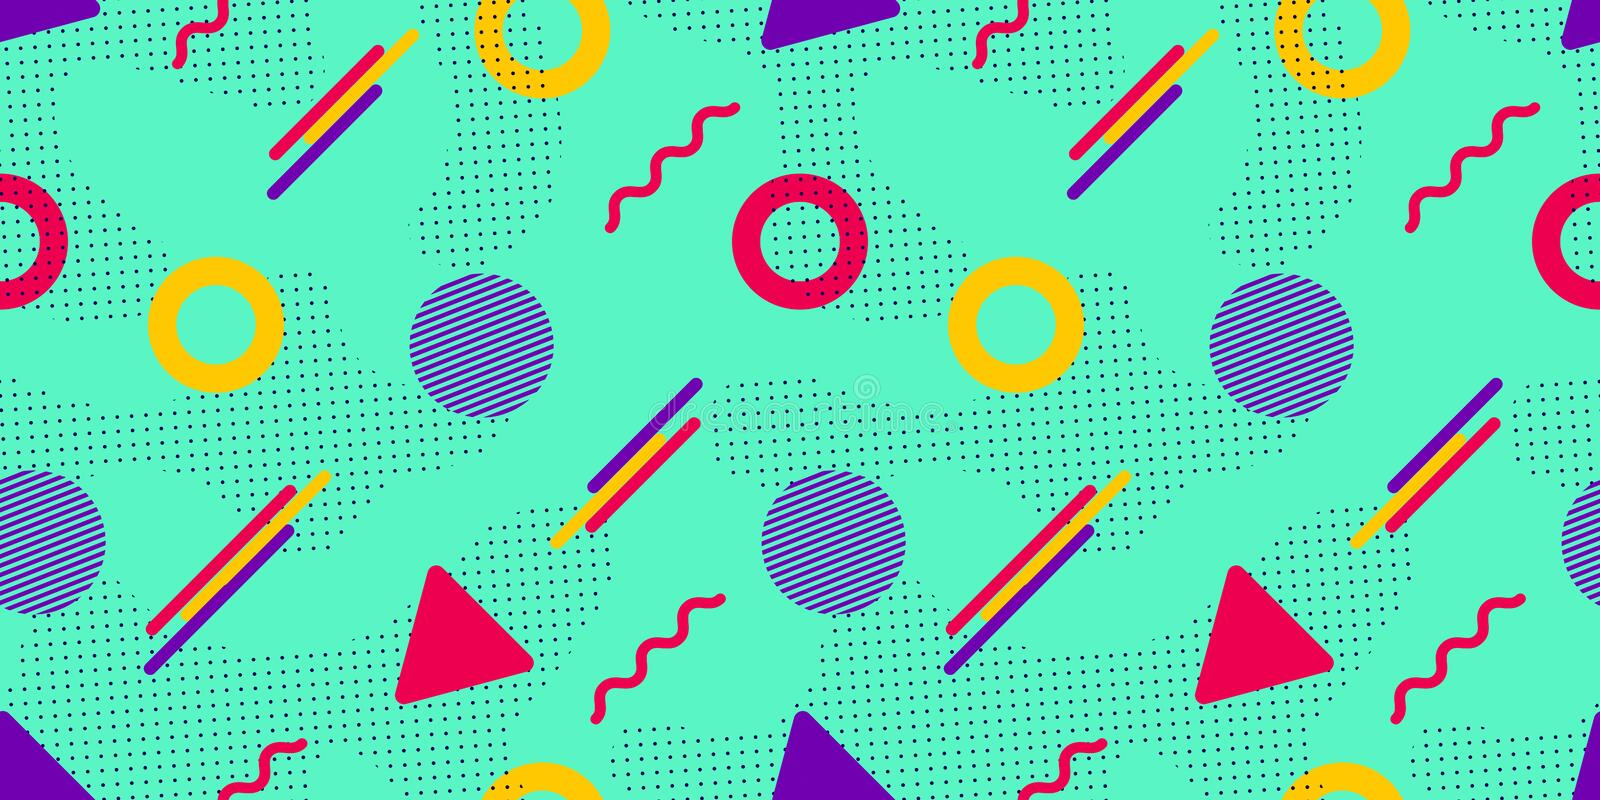 Memphis vector background. Colorful geometric shapes in modern style. Hipster seamless pattern. Trendy repeated texture. Abstract vector illustration